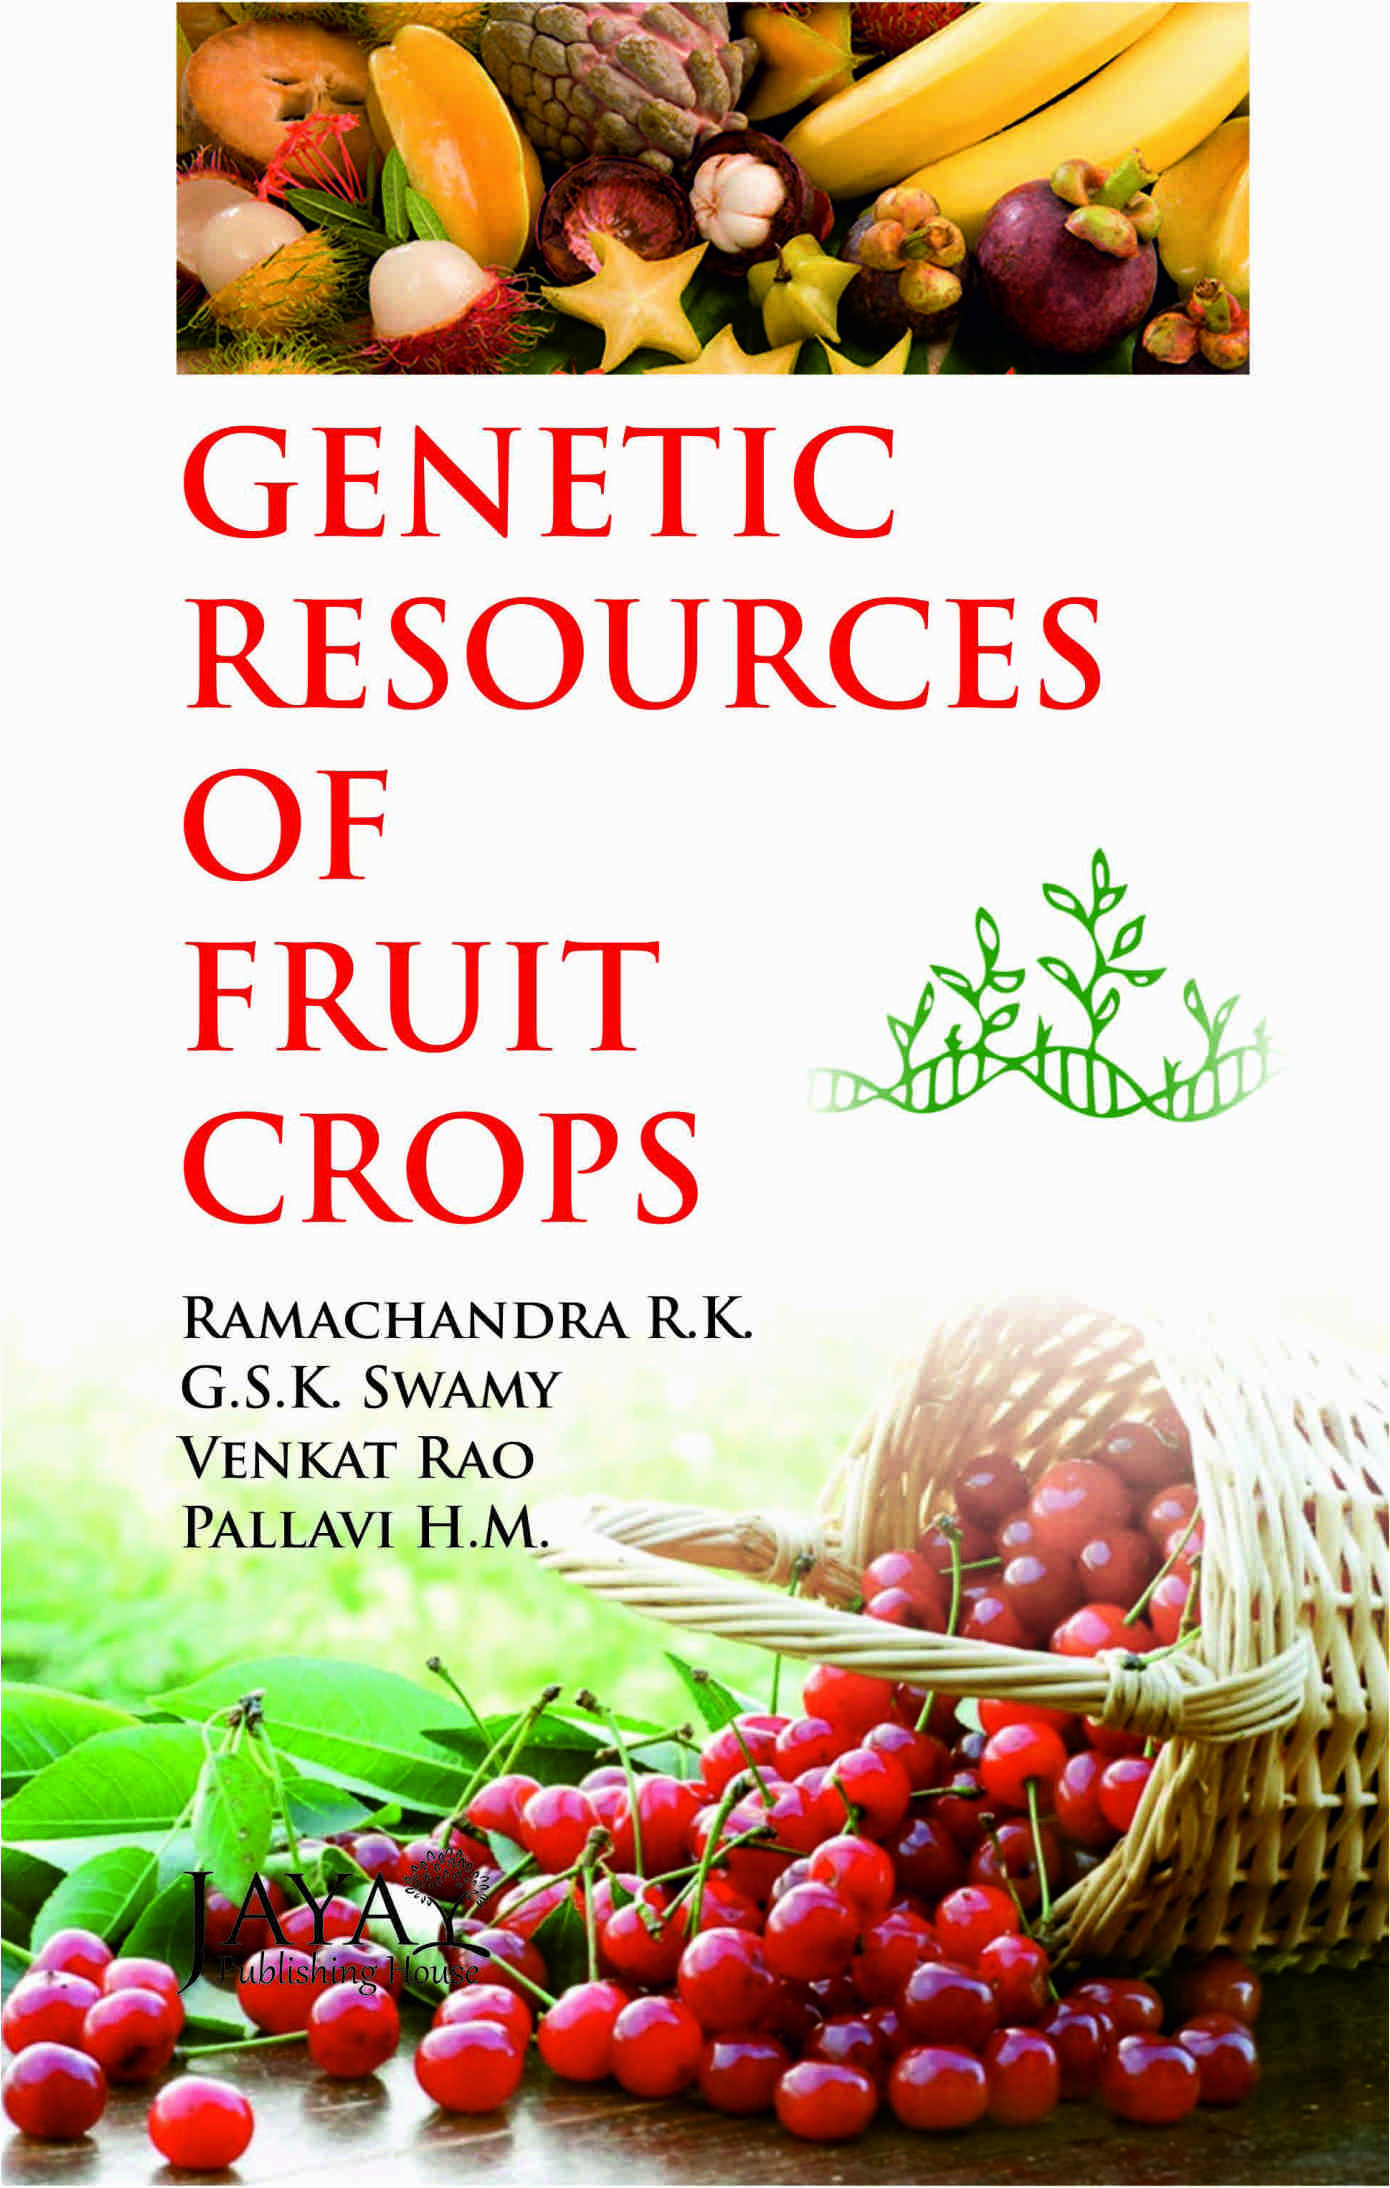 Genetic Resources of Fruits Crops